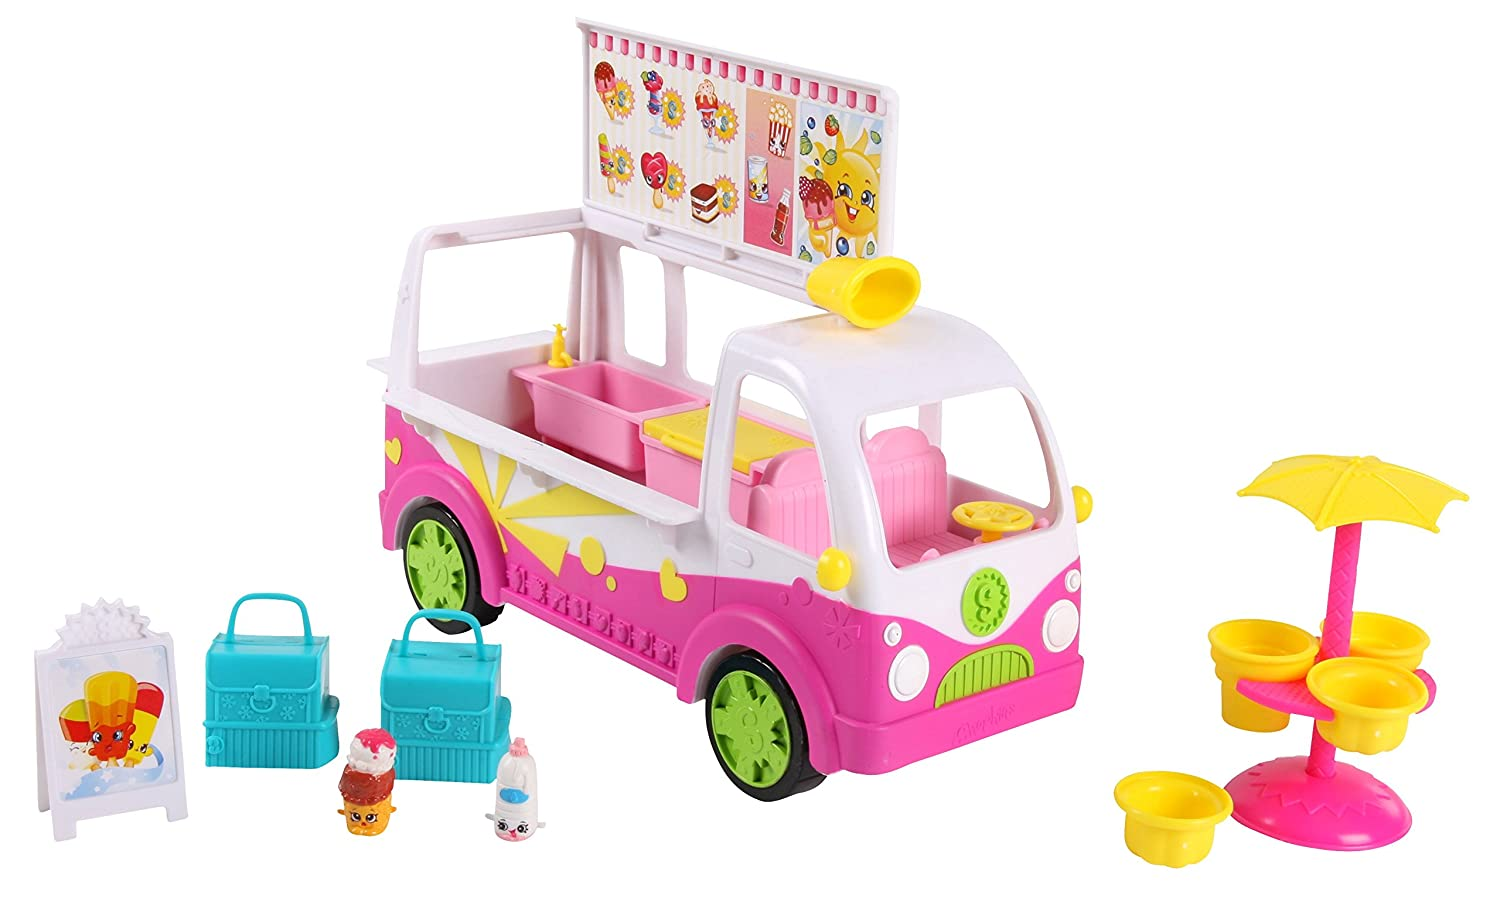 amazon com shopkins s3 scoops ice cream truck toys u0026 games